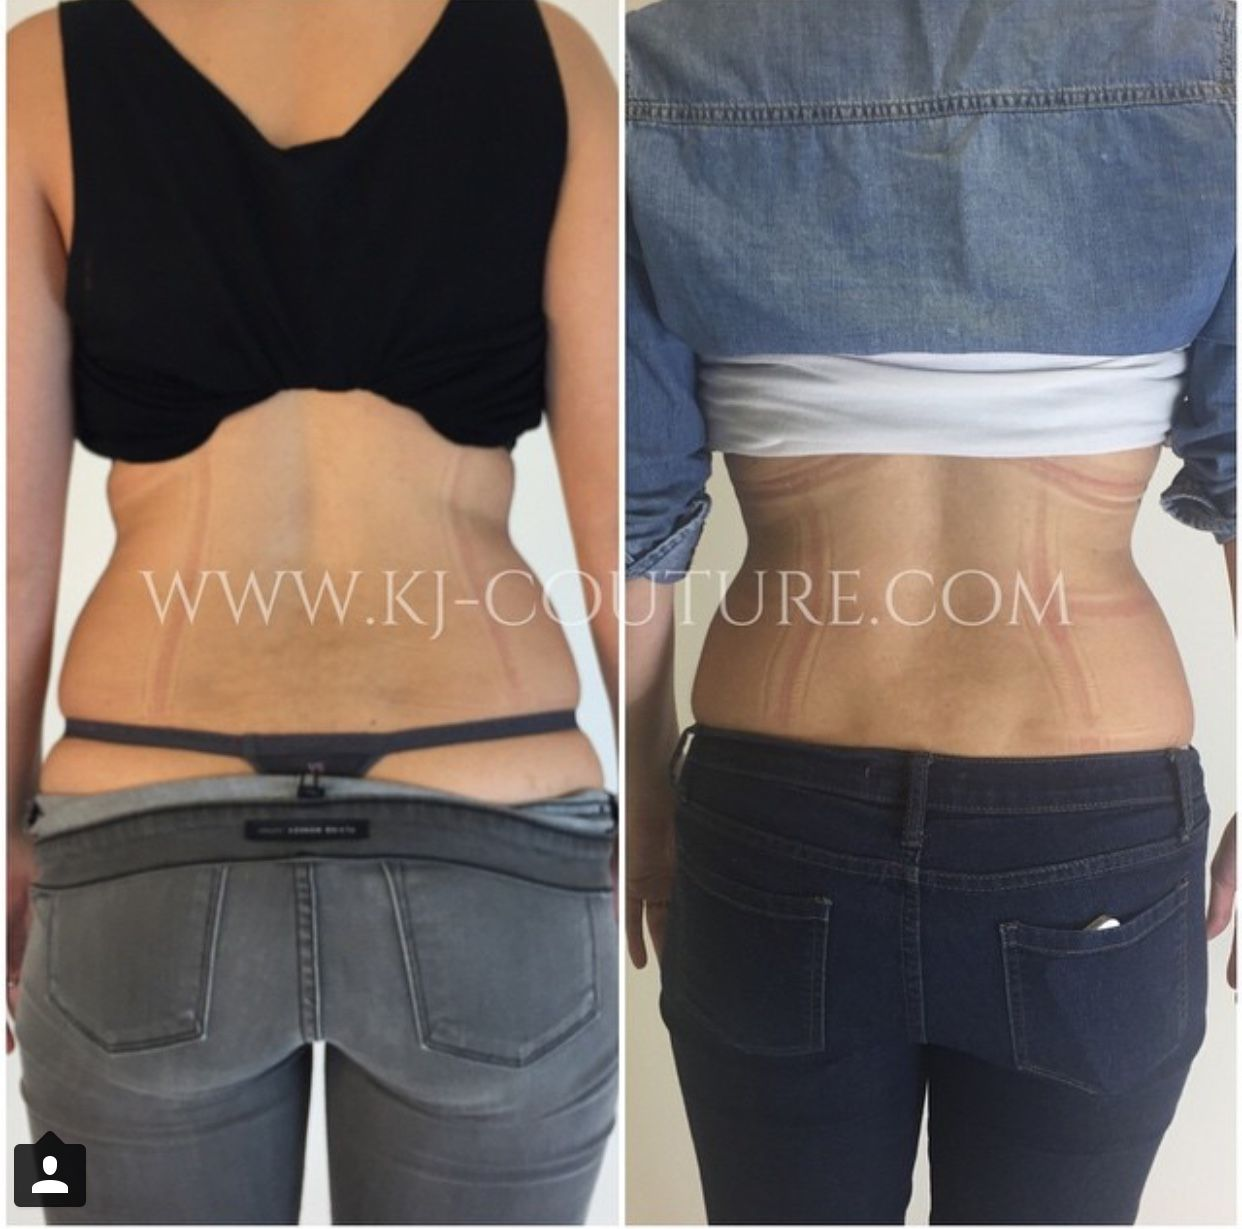 1 week before and after results from using the KJC FAJA